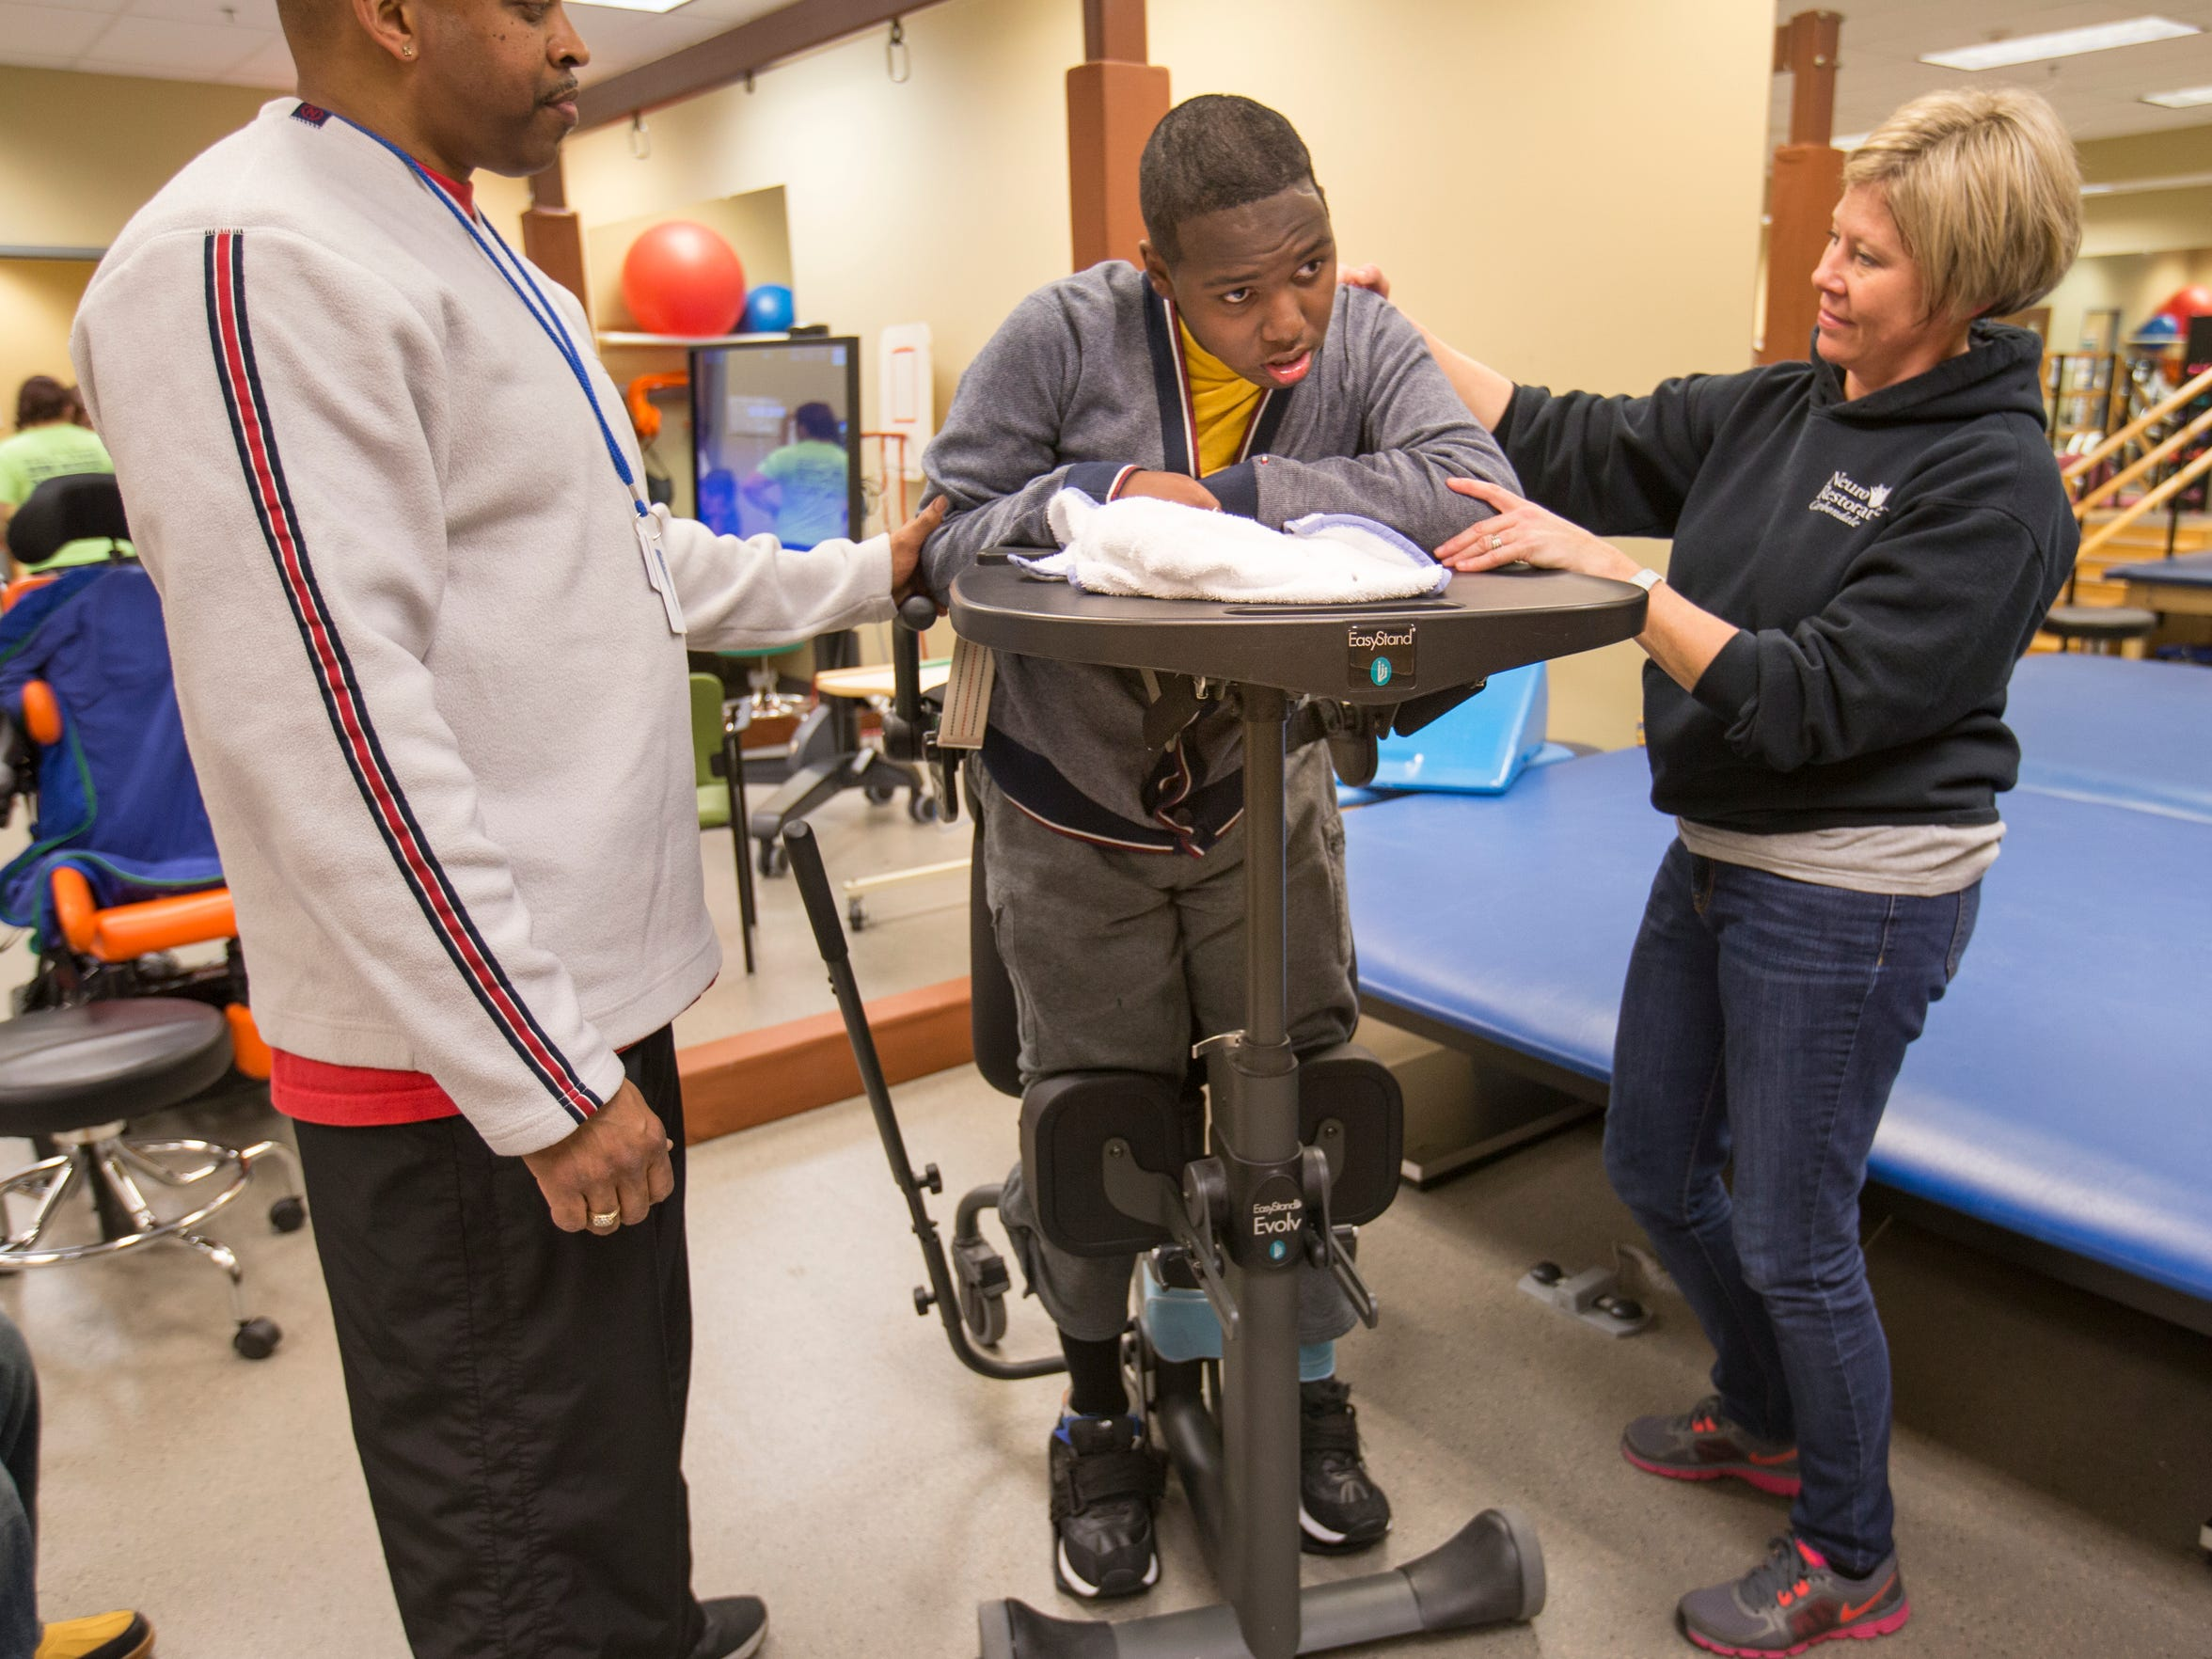 DeAndre Knox is helped by Will Bollinger (left), Carbondale, and Kathy Mileur, Murphysboro, Ill., who work on a device that stretches him into a standing position at Neuro Restorative, Carbondale, Ill., Thursday, January 21, 2016. Knox was shot in 2014, and has a long road of physical therapy ahead.